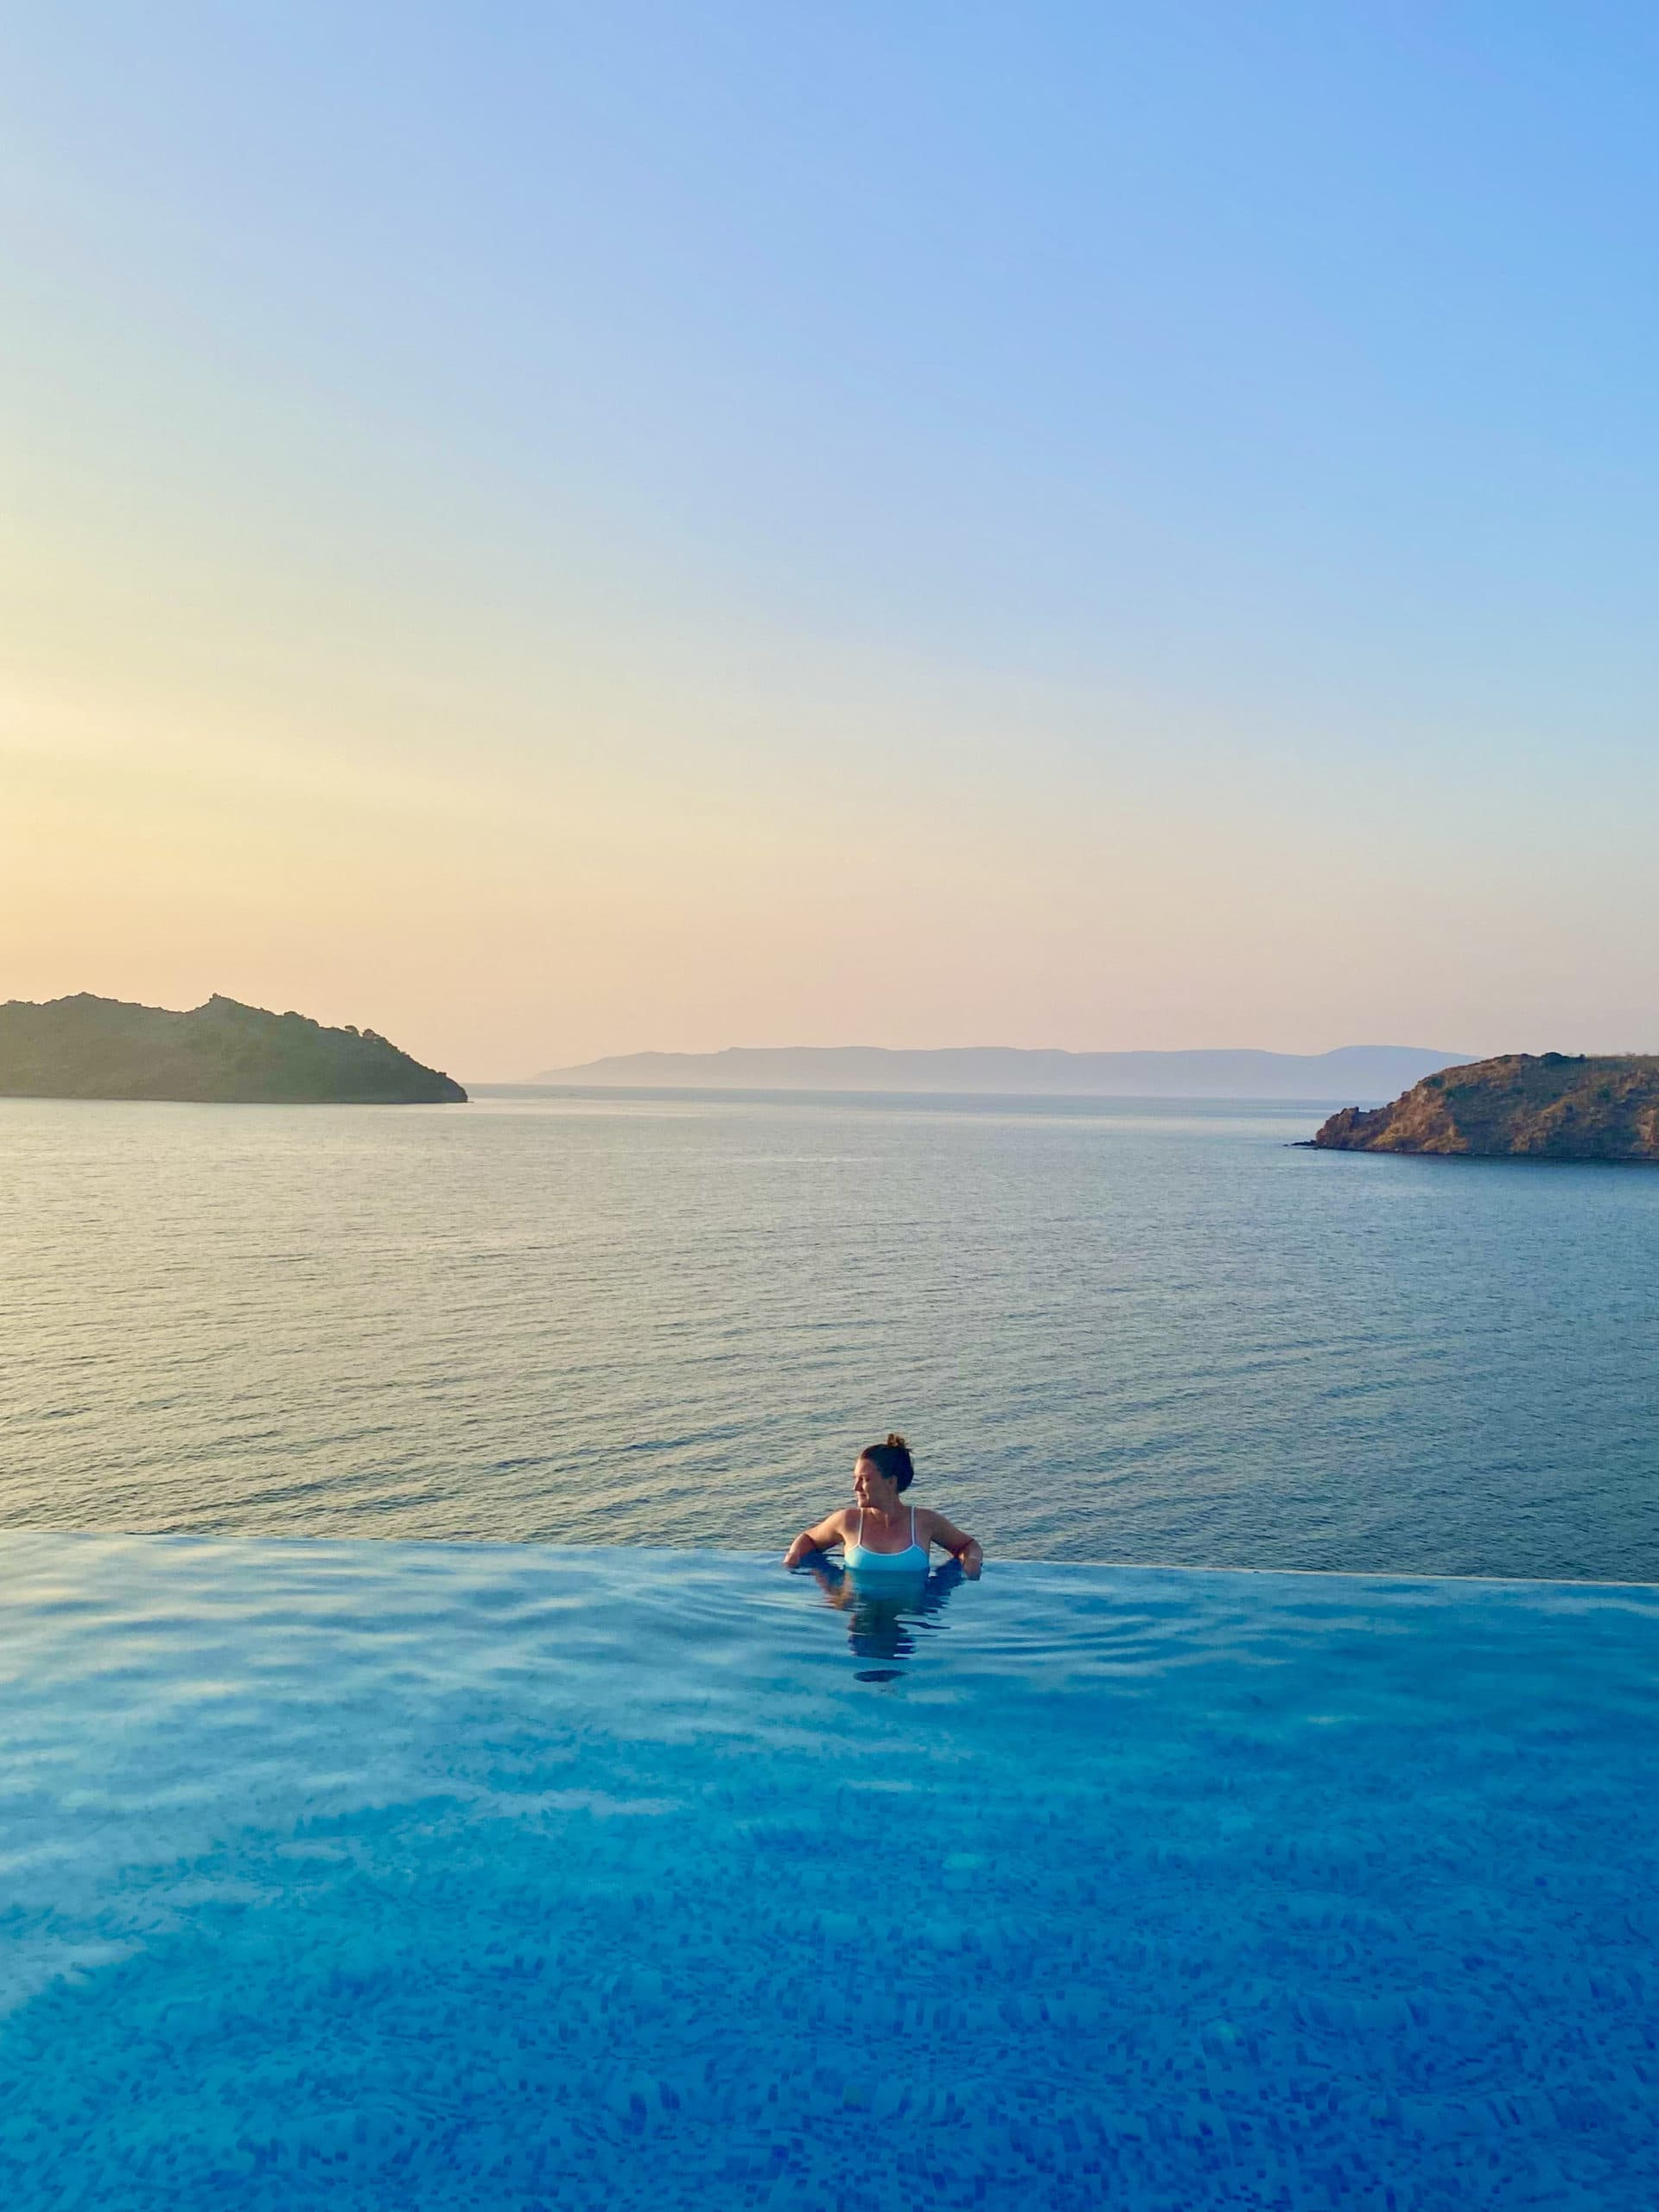 A woman casually stands in an infinity pool looking over her shoulder with the sea in the background